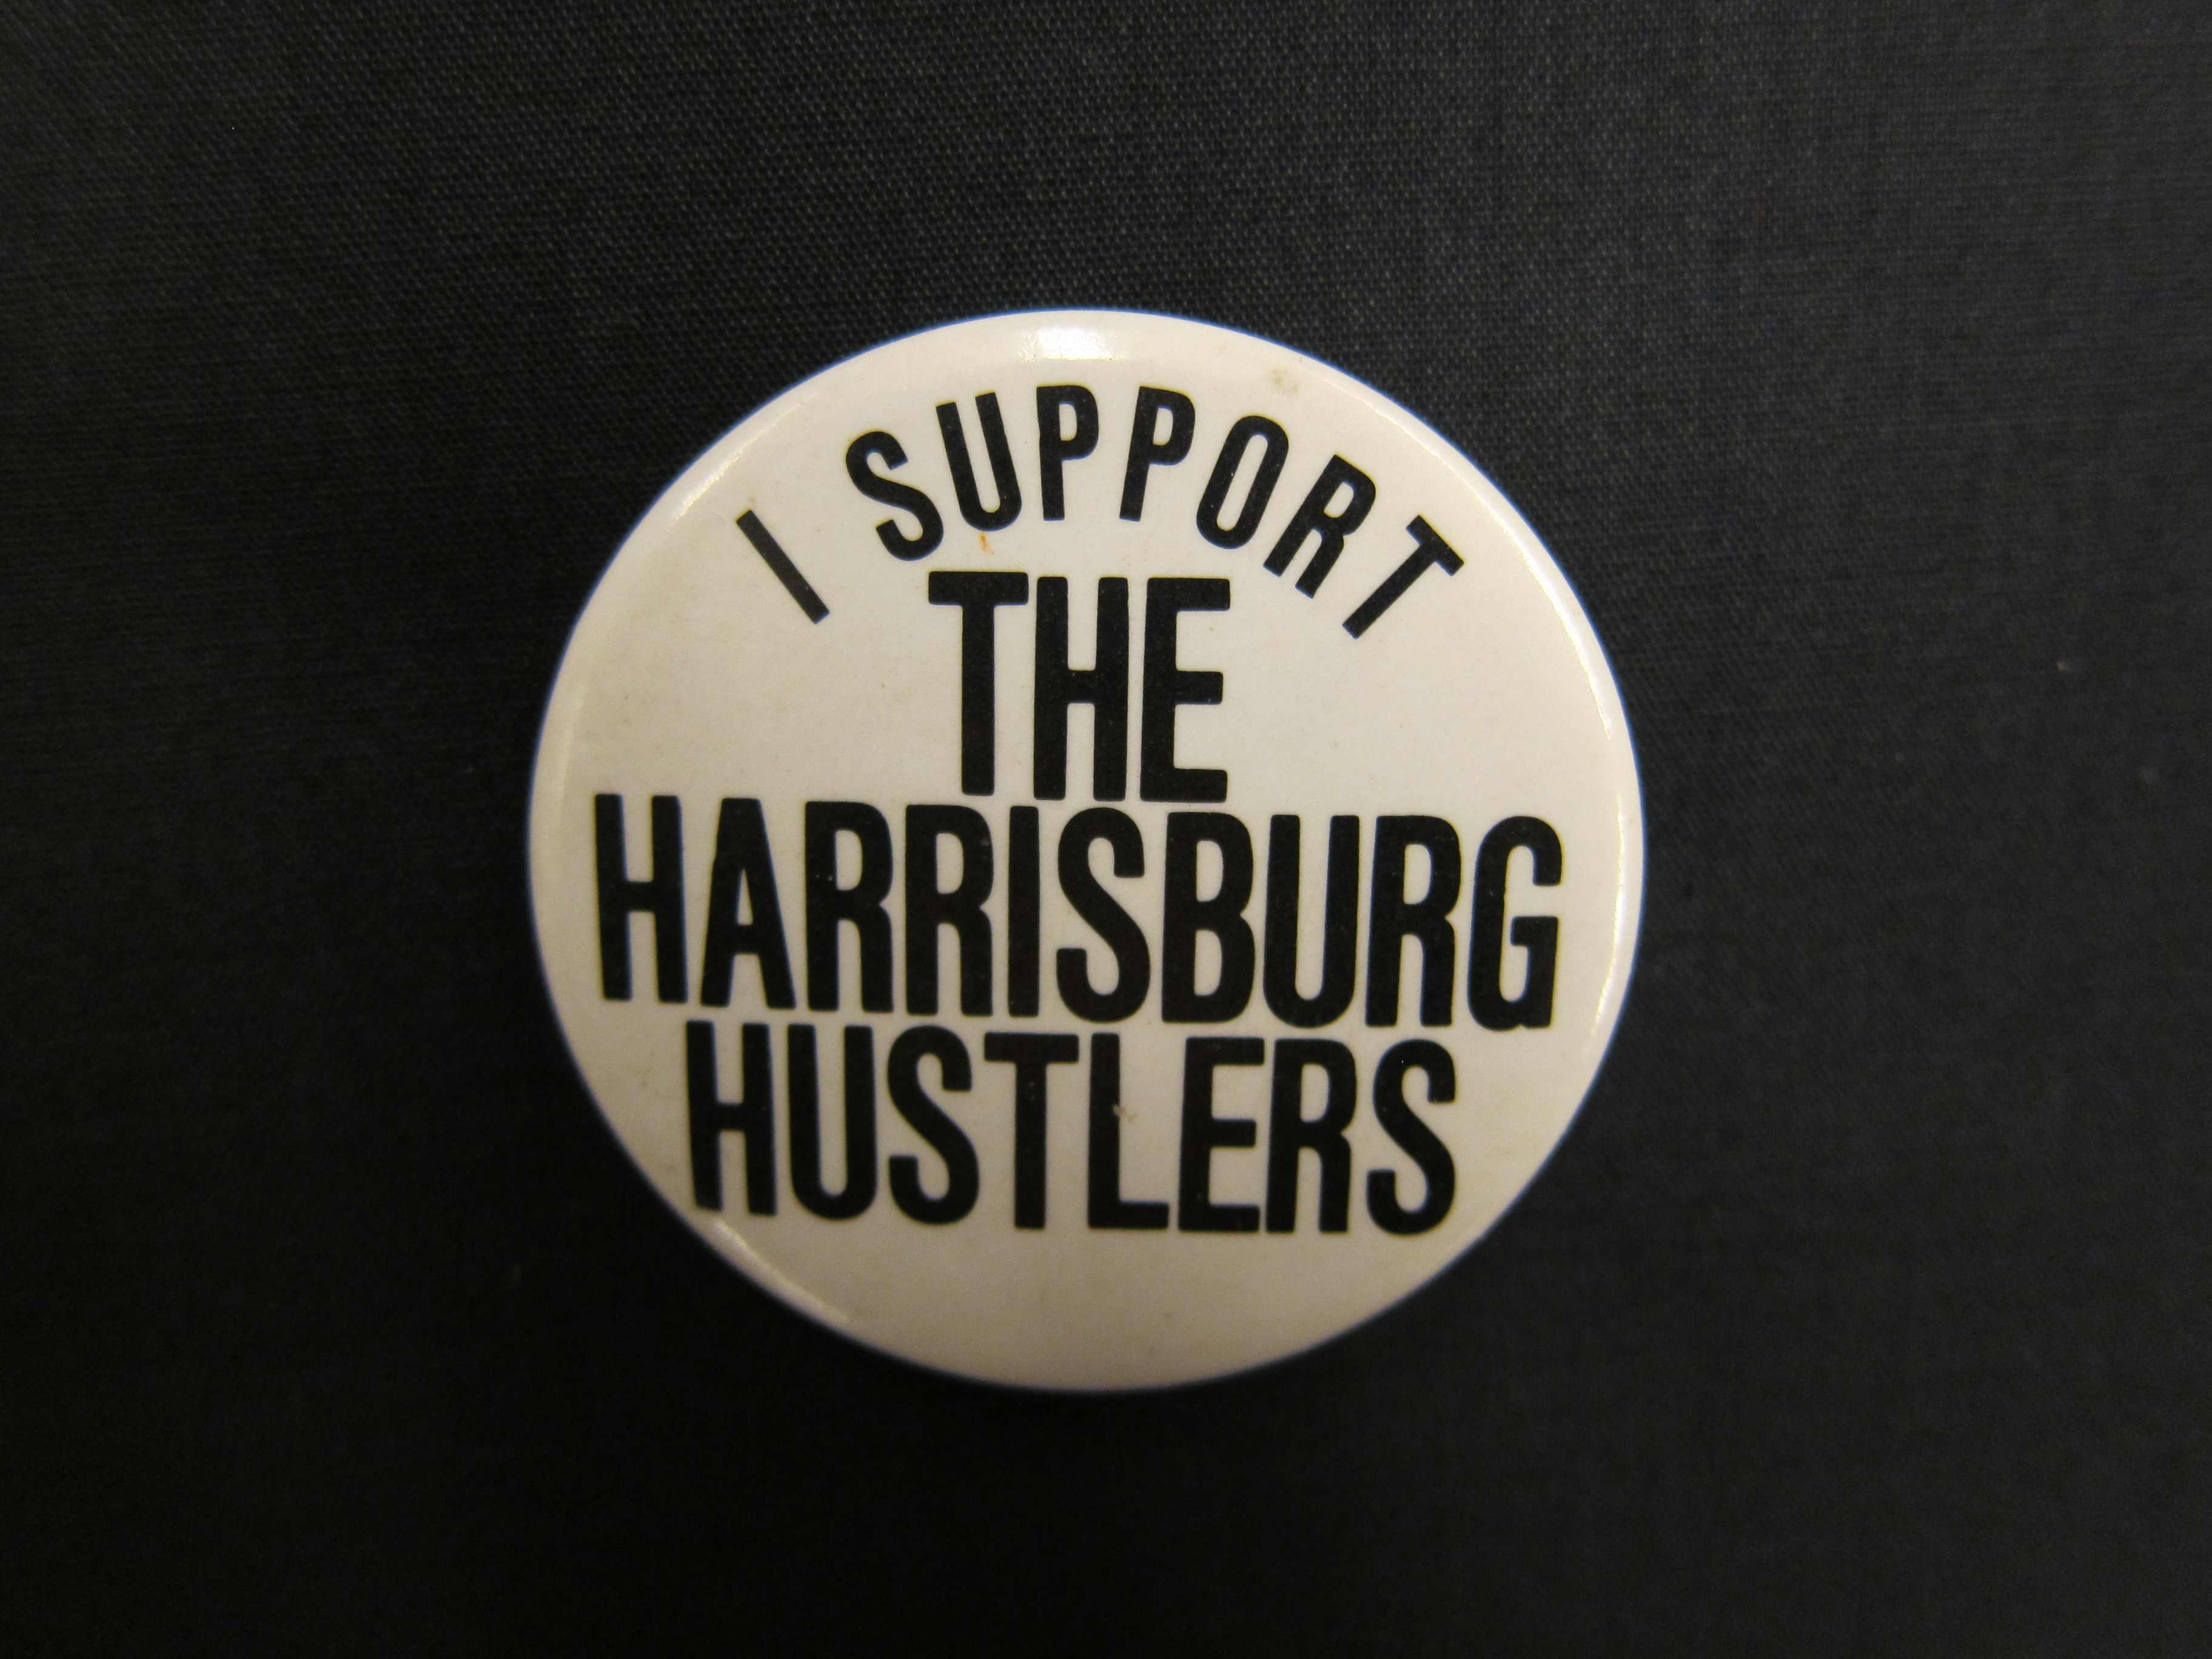 Fan button for the Harrisburg Hustlers volleyball team.